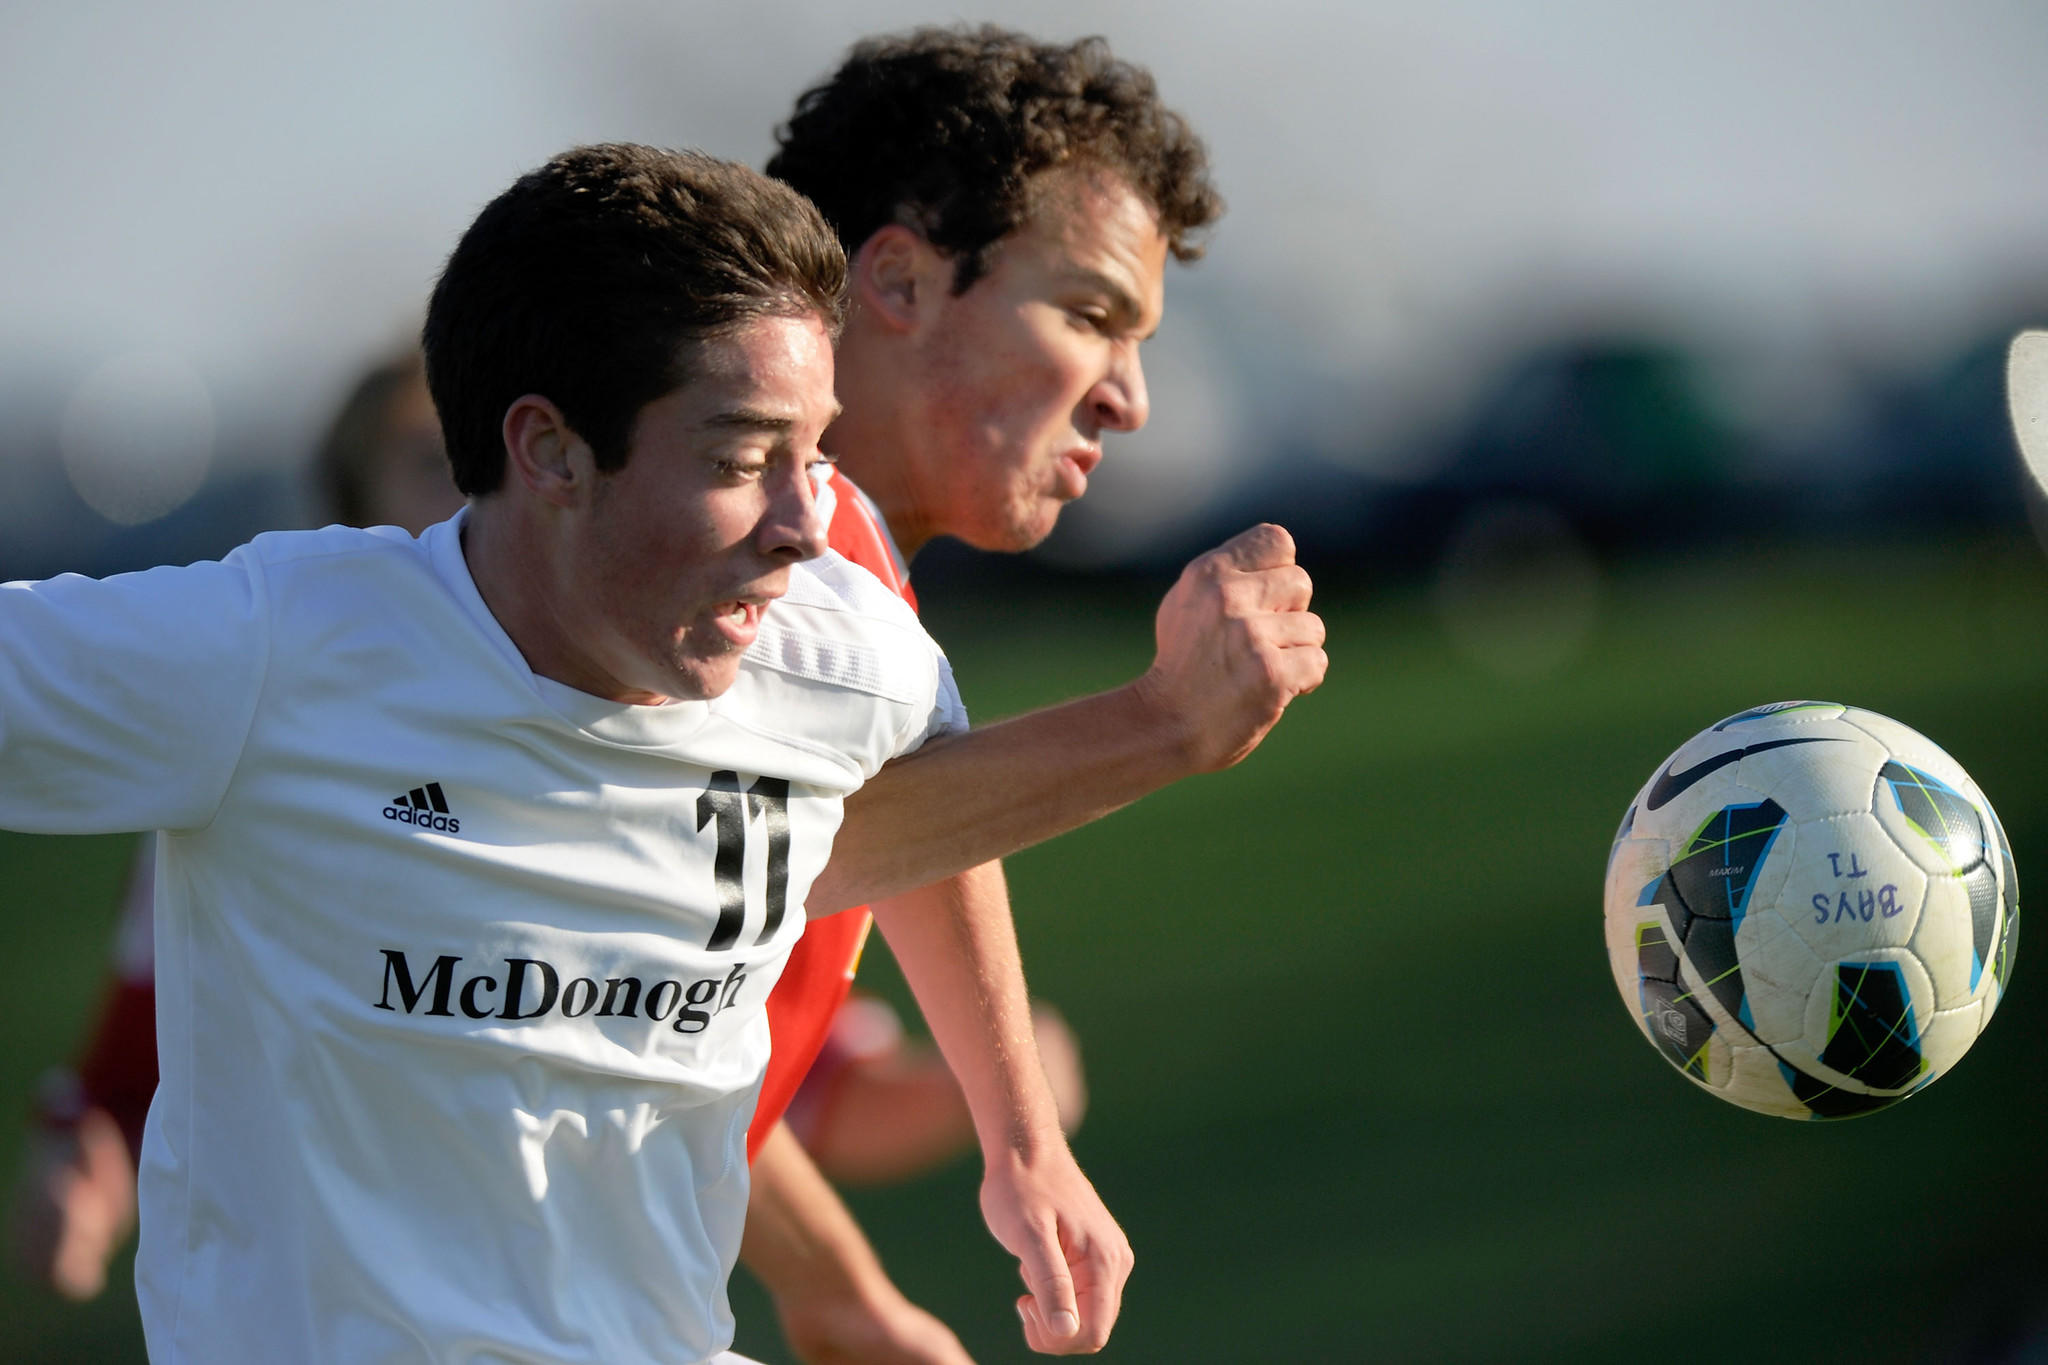 McDonogh's Jack Settleman and Calvert Hall's Dominic Fullano vie for a ball in the first half of their A Conference semifinal match.